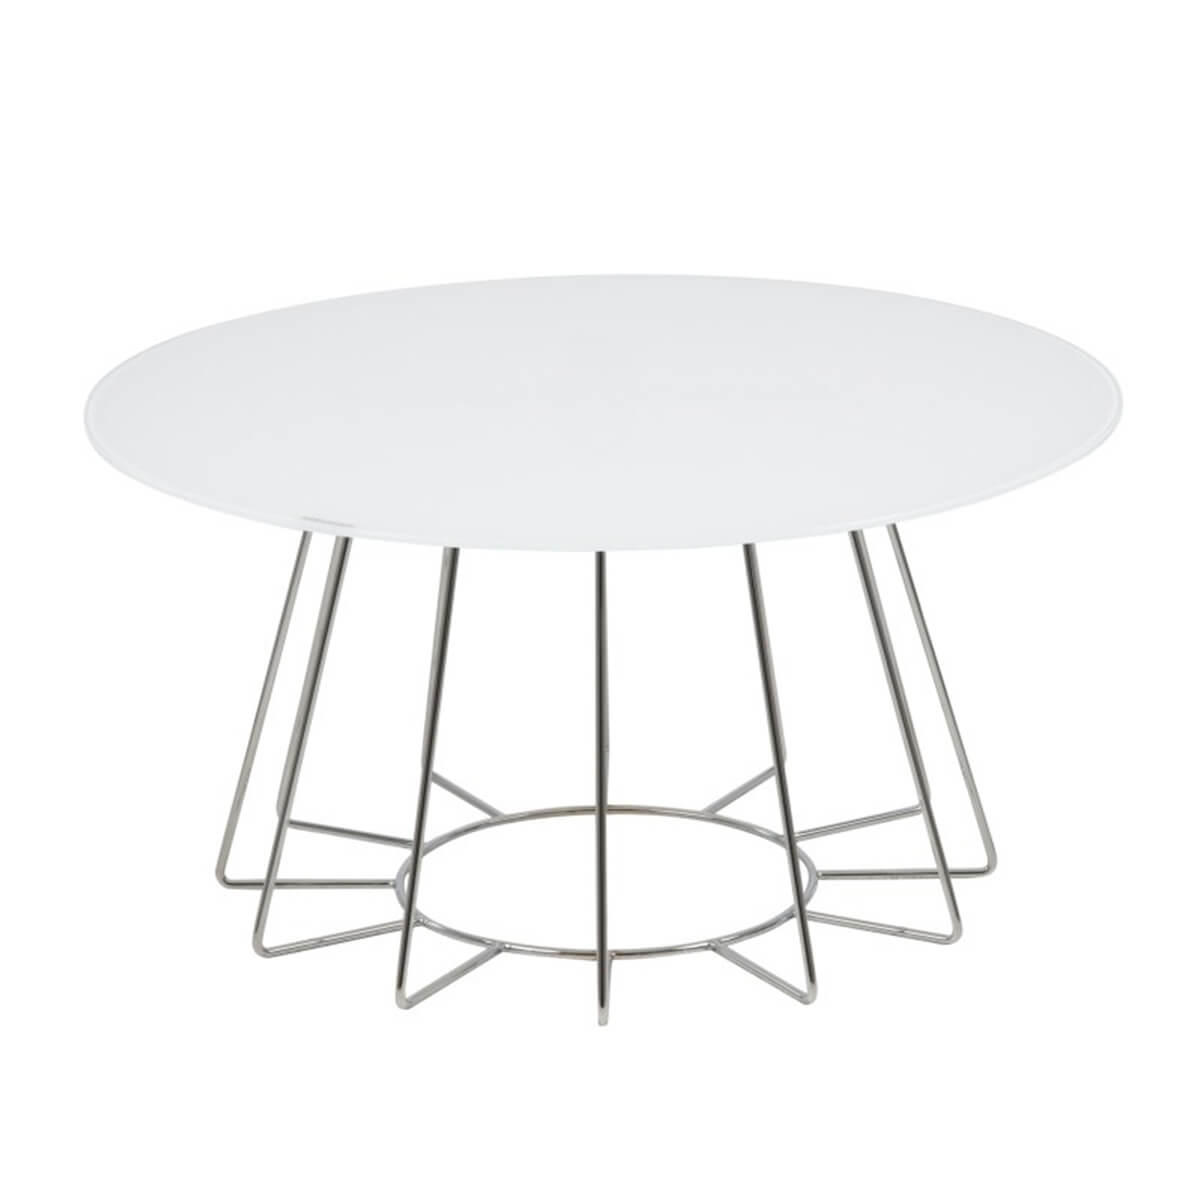 Casia White Glass Coffee Table With Chrome Legs Coffee Tables Fads